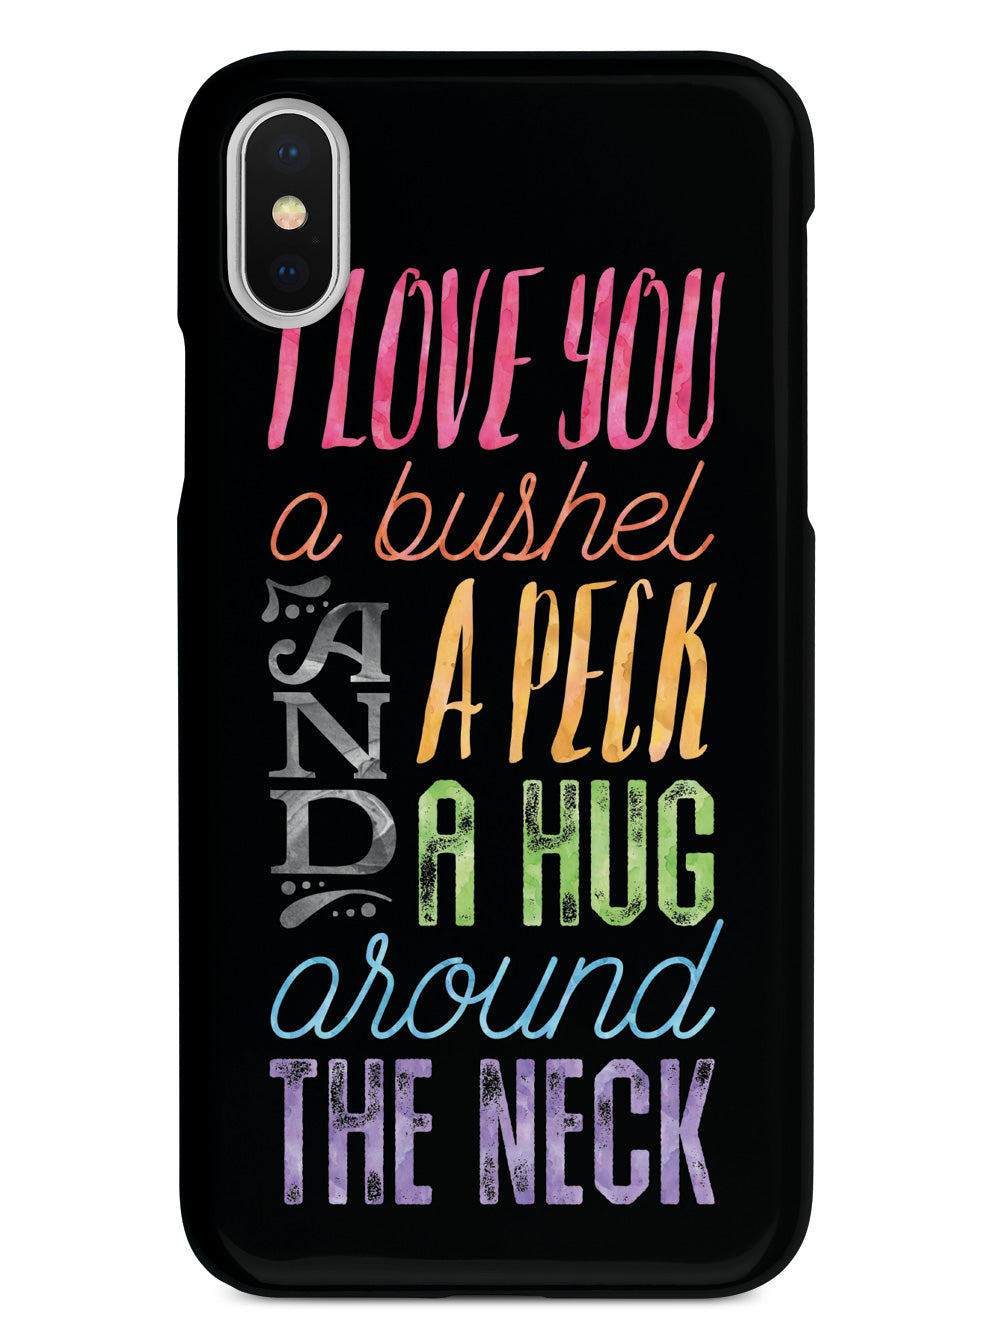 I Love You a Bushel and a Peck - Black Case